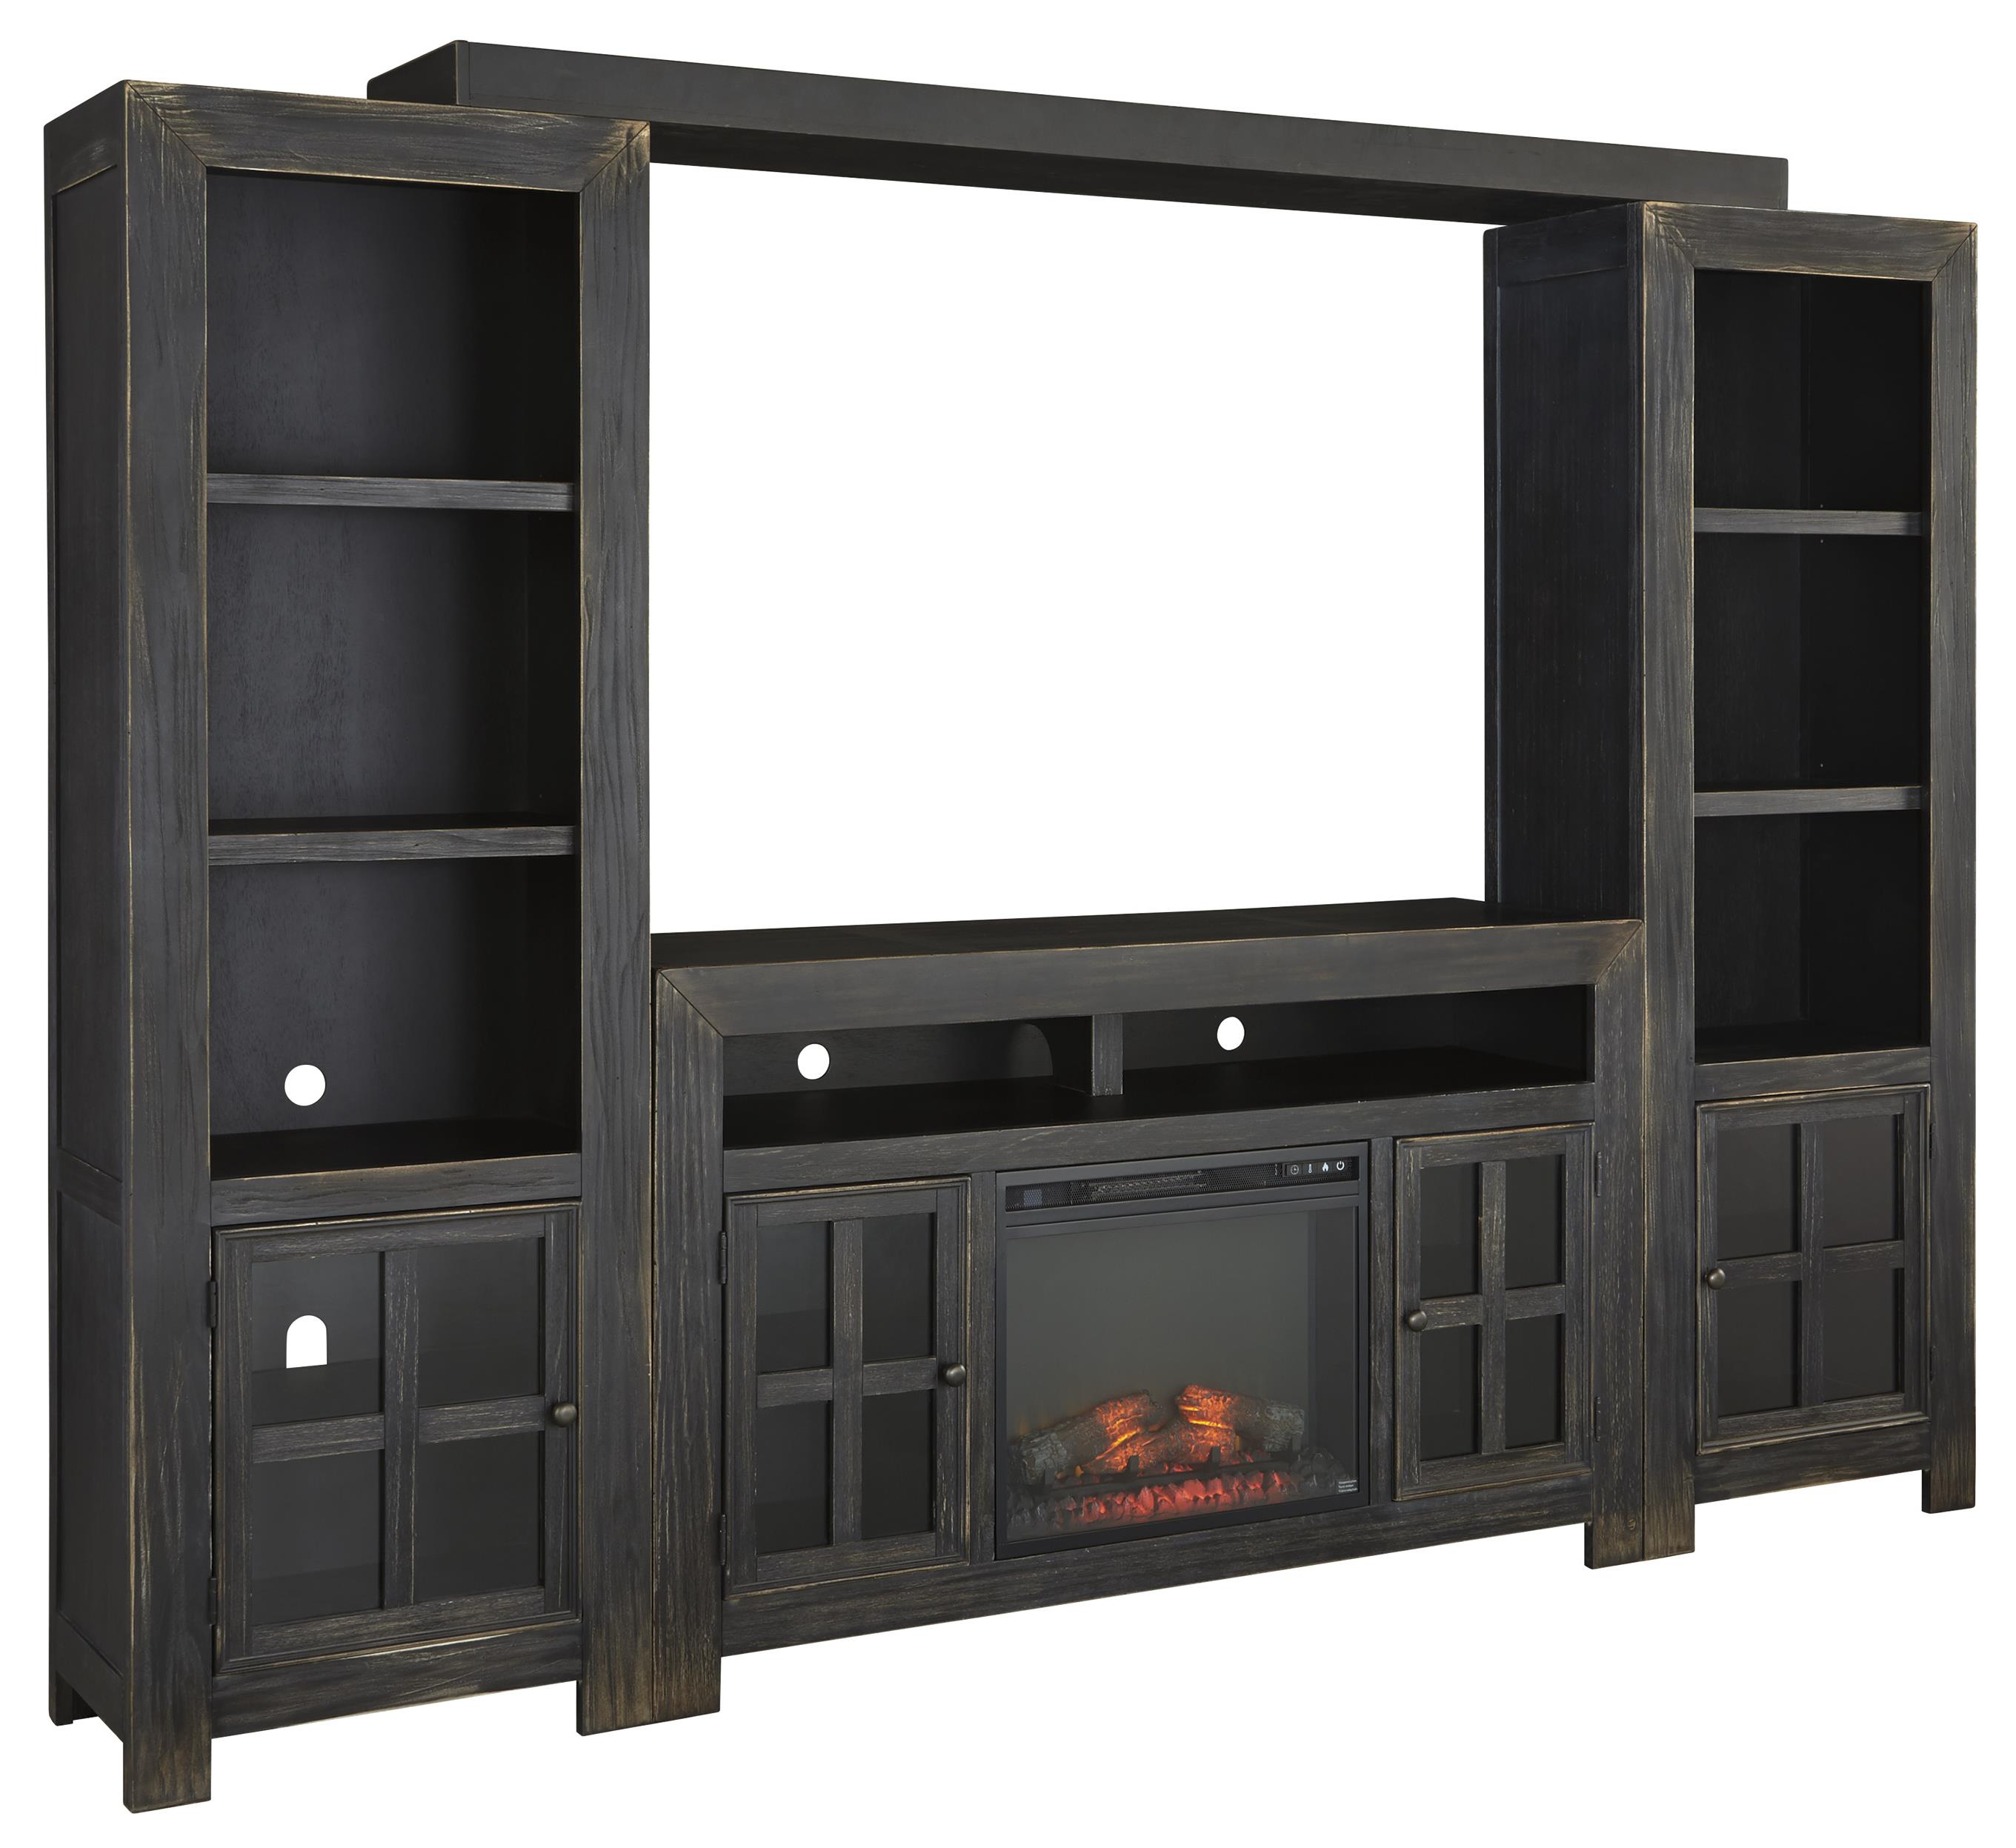 Entertainment Wall Unit w TV Stand Fireplace